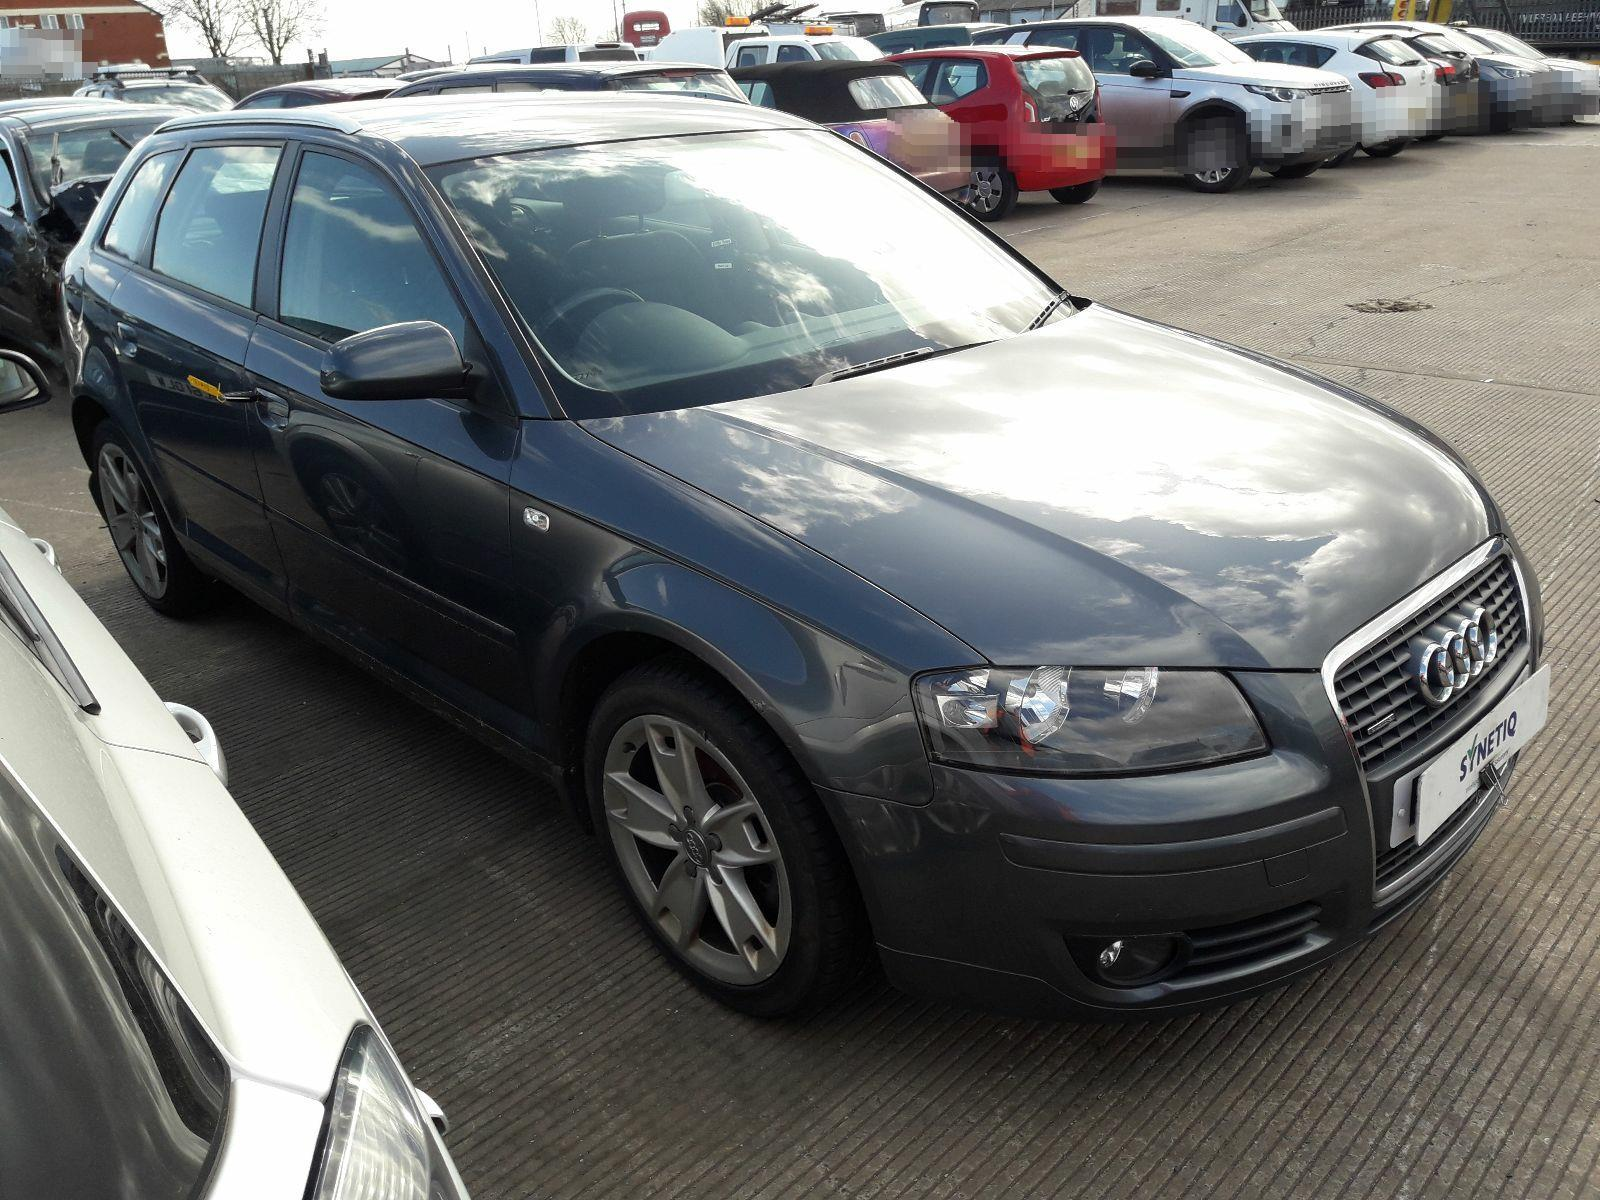 Synetiq 2006 Audi A3 Mk2 8p A5 2003 To 2013 Tdi Quattro Sport 5 Door Hatchback Diesel Manual Breaking For Used And Spare Parts